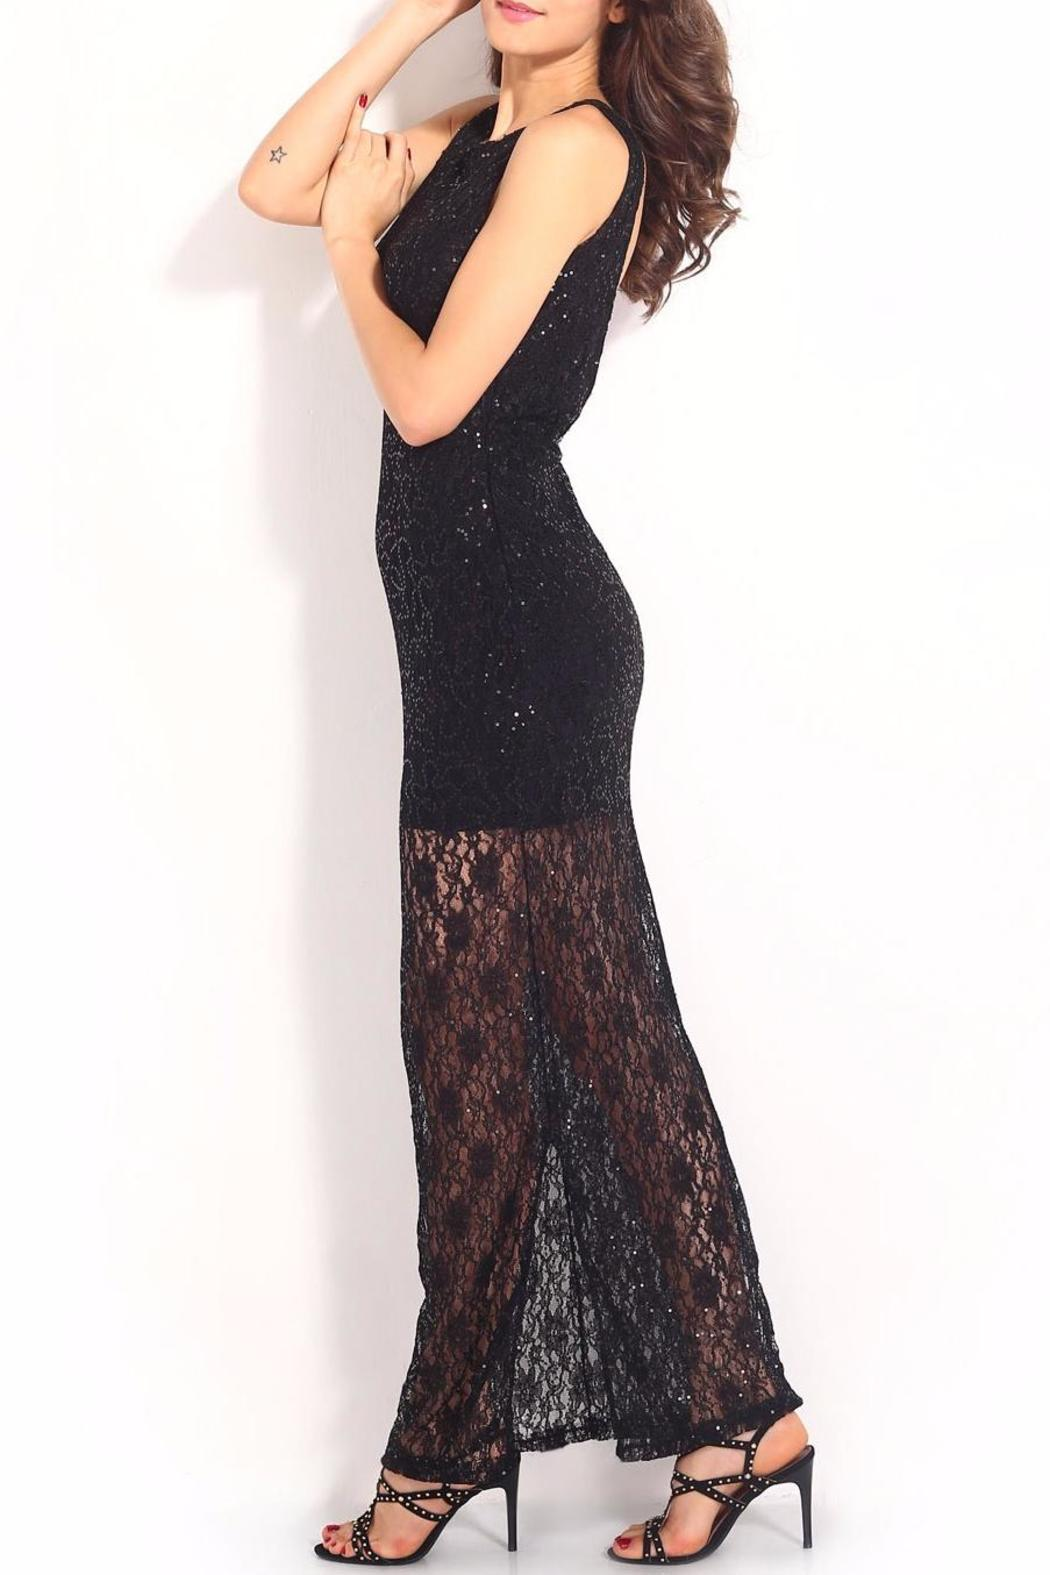 Adore Clothes & More Lace Sequin Dress - Side Cropped Image